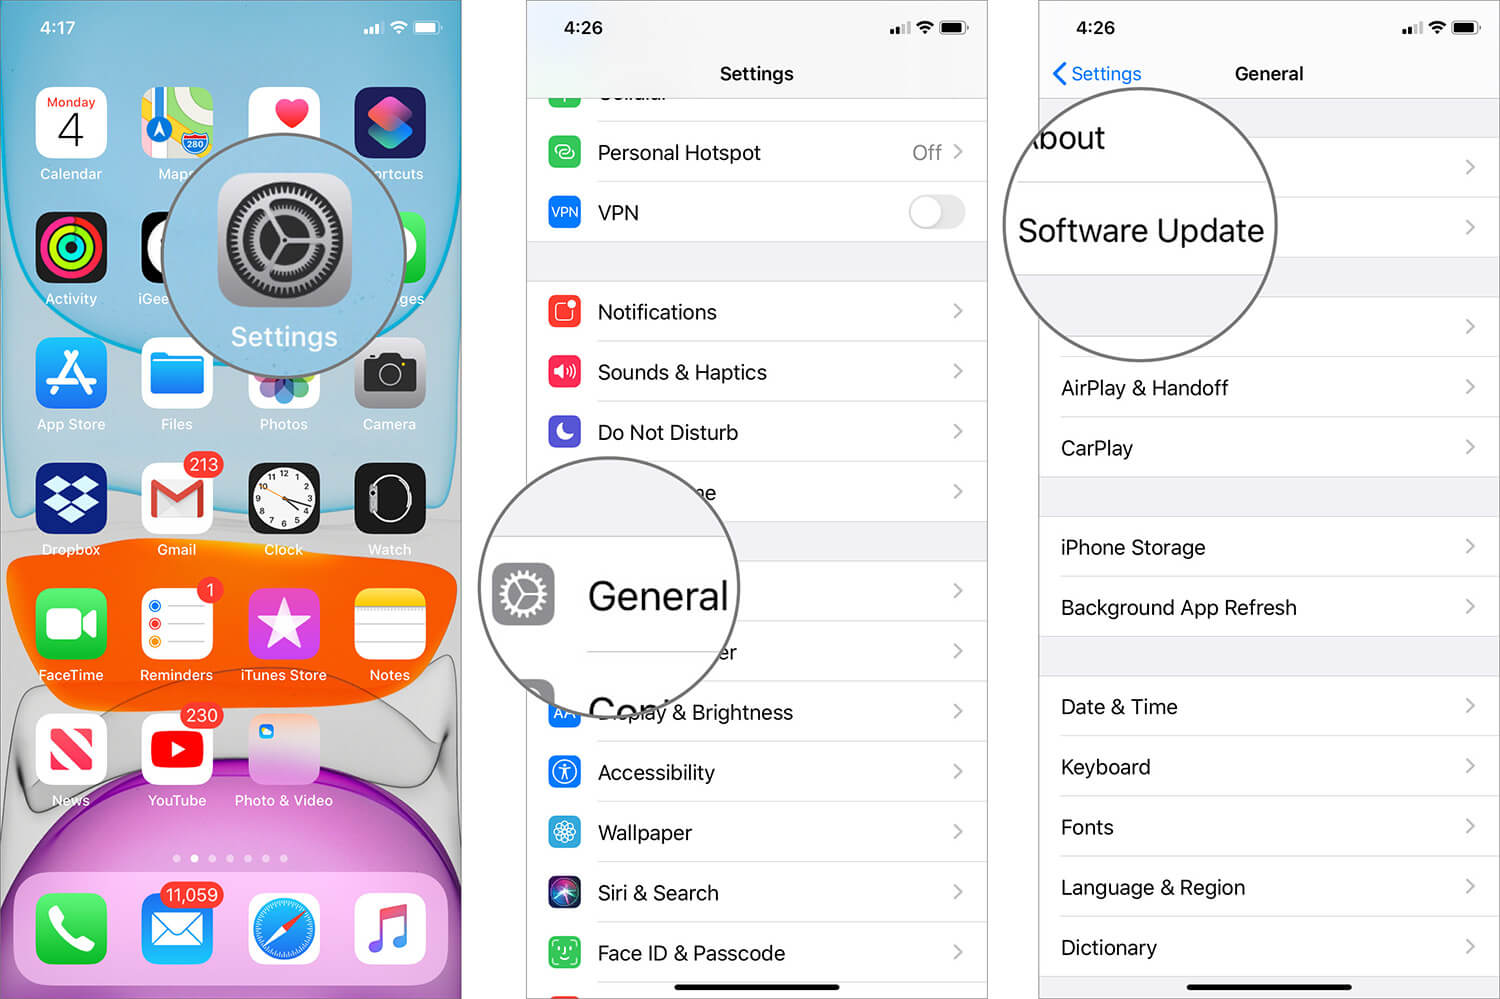 Tap on Software Update in iOS 13 Settings App on iPhone